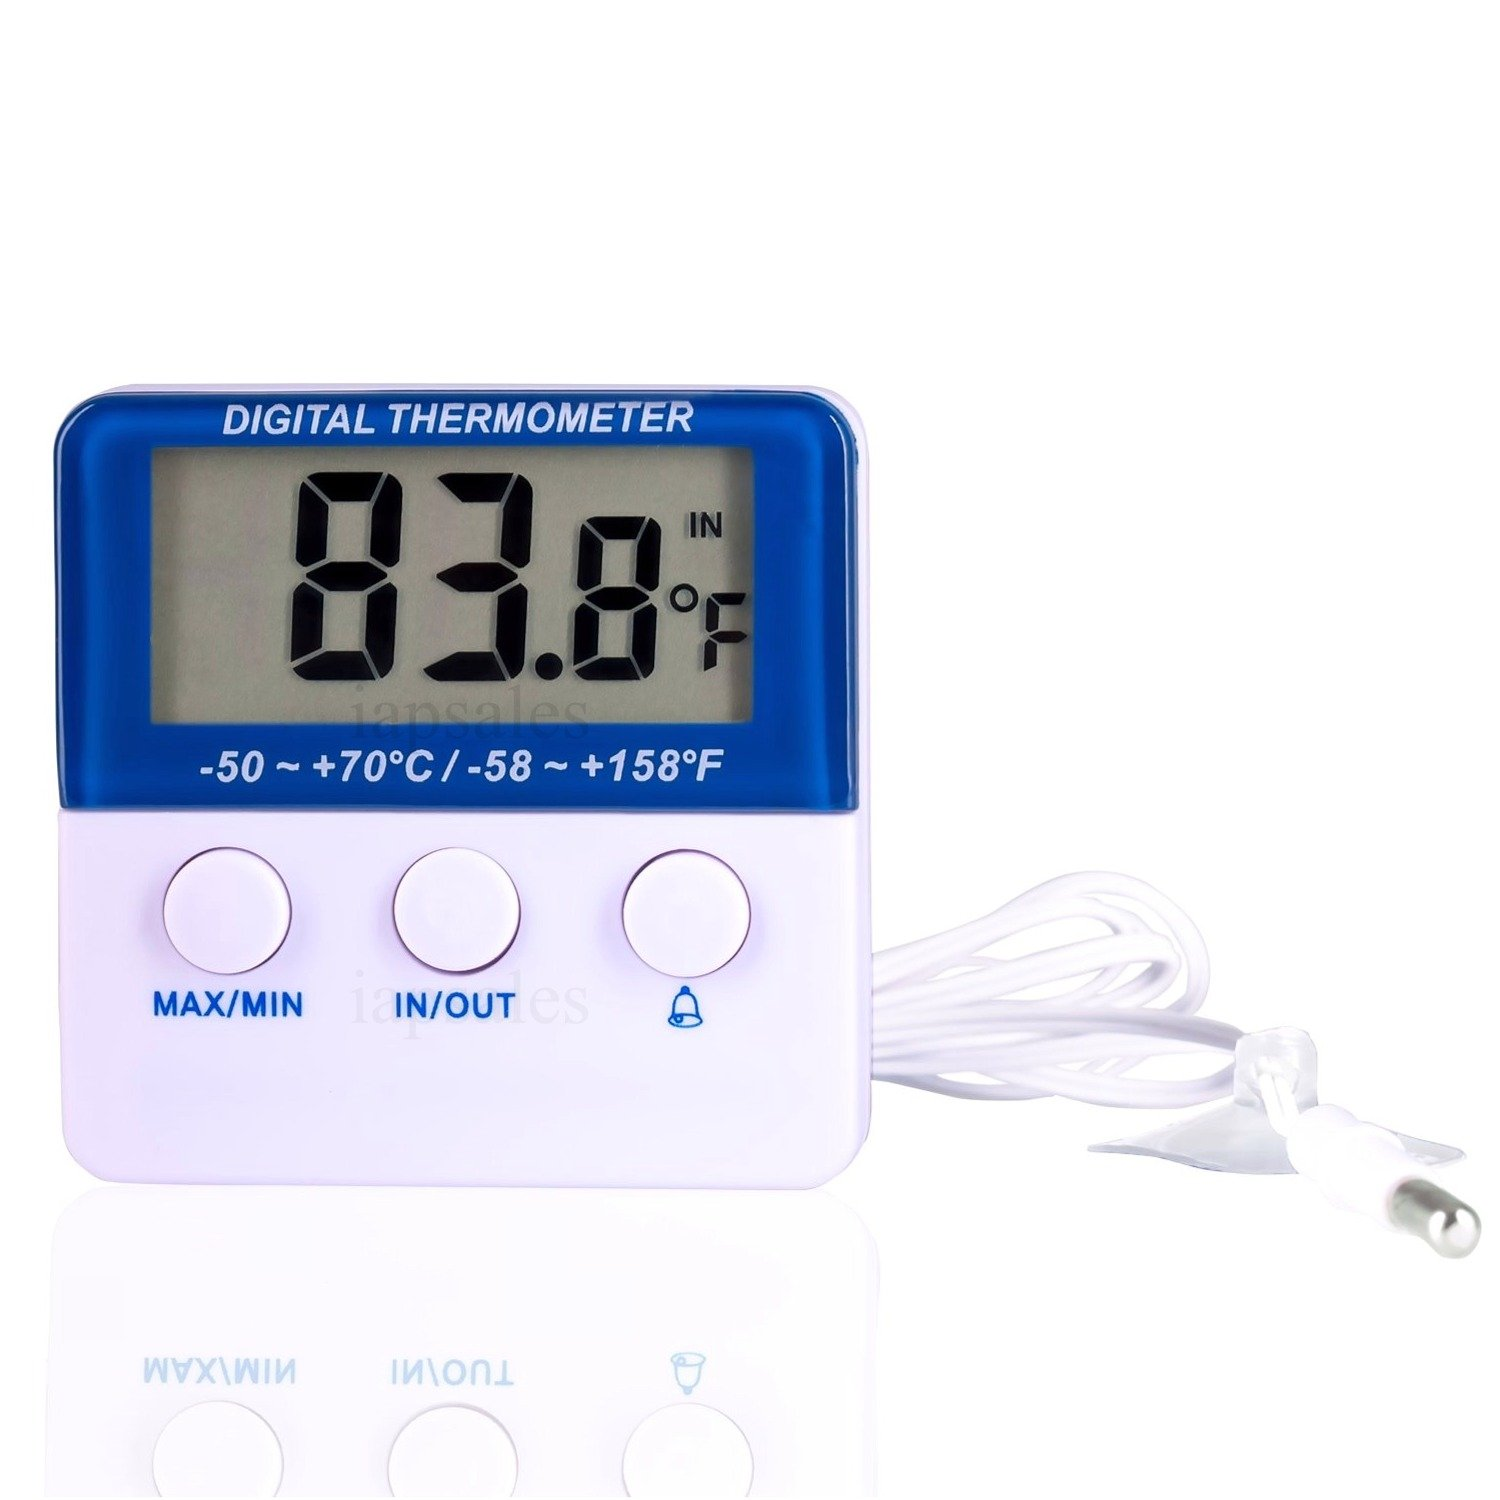 Digital Refrigerator & Freezer Thermometer with Audible Alarm. Highest Quality, Easy to Read, Mounts Outside Cooler & Monitors High & Low Temp. Settings for Min/Max/History